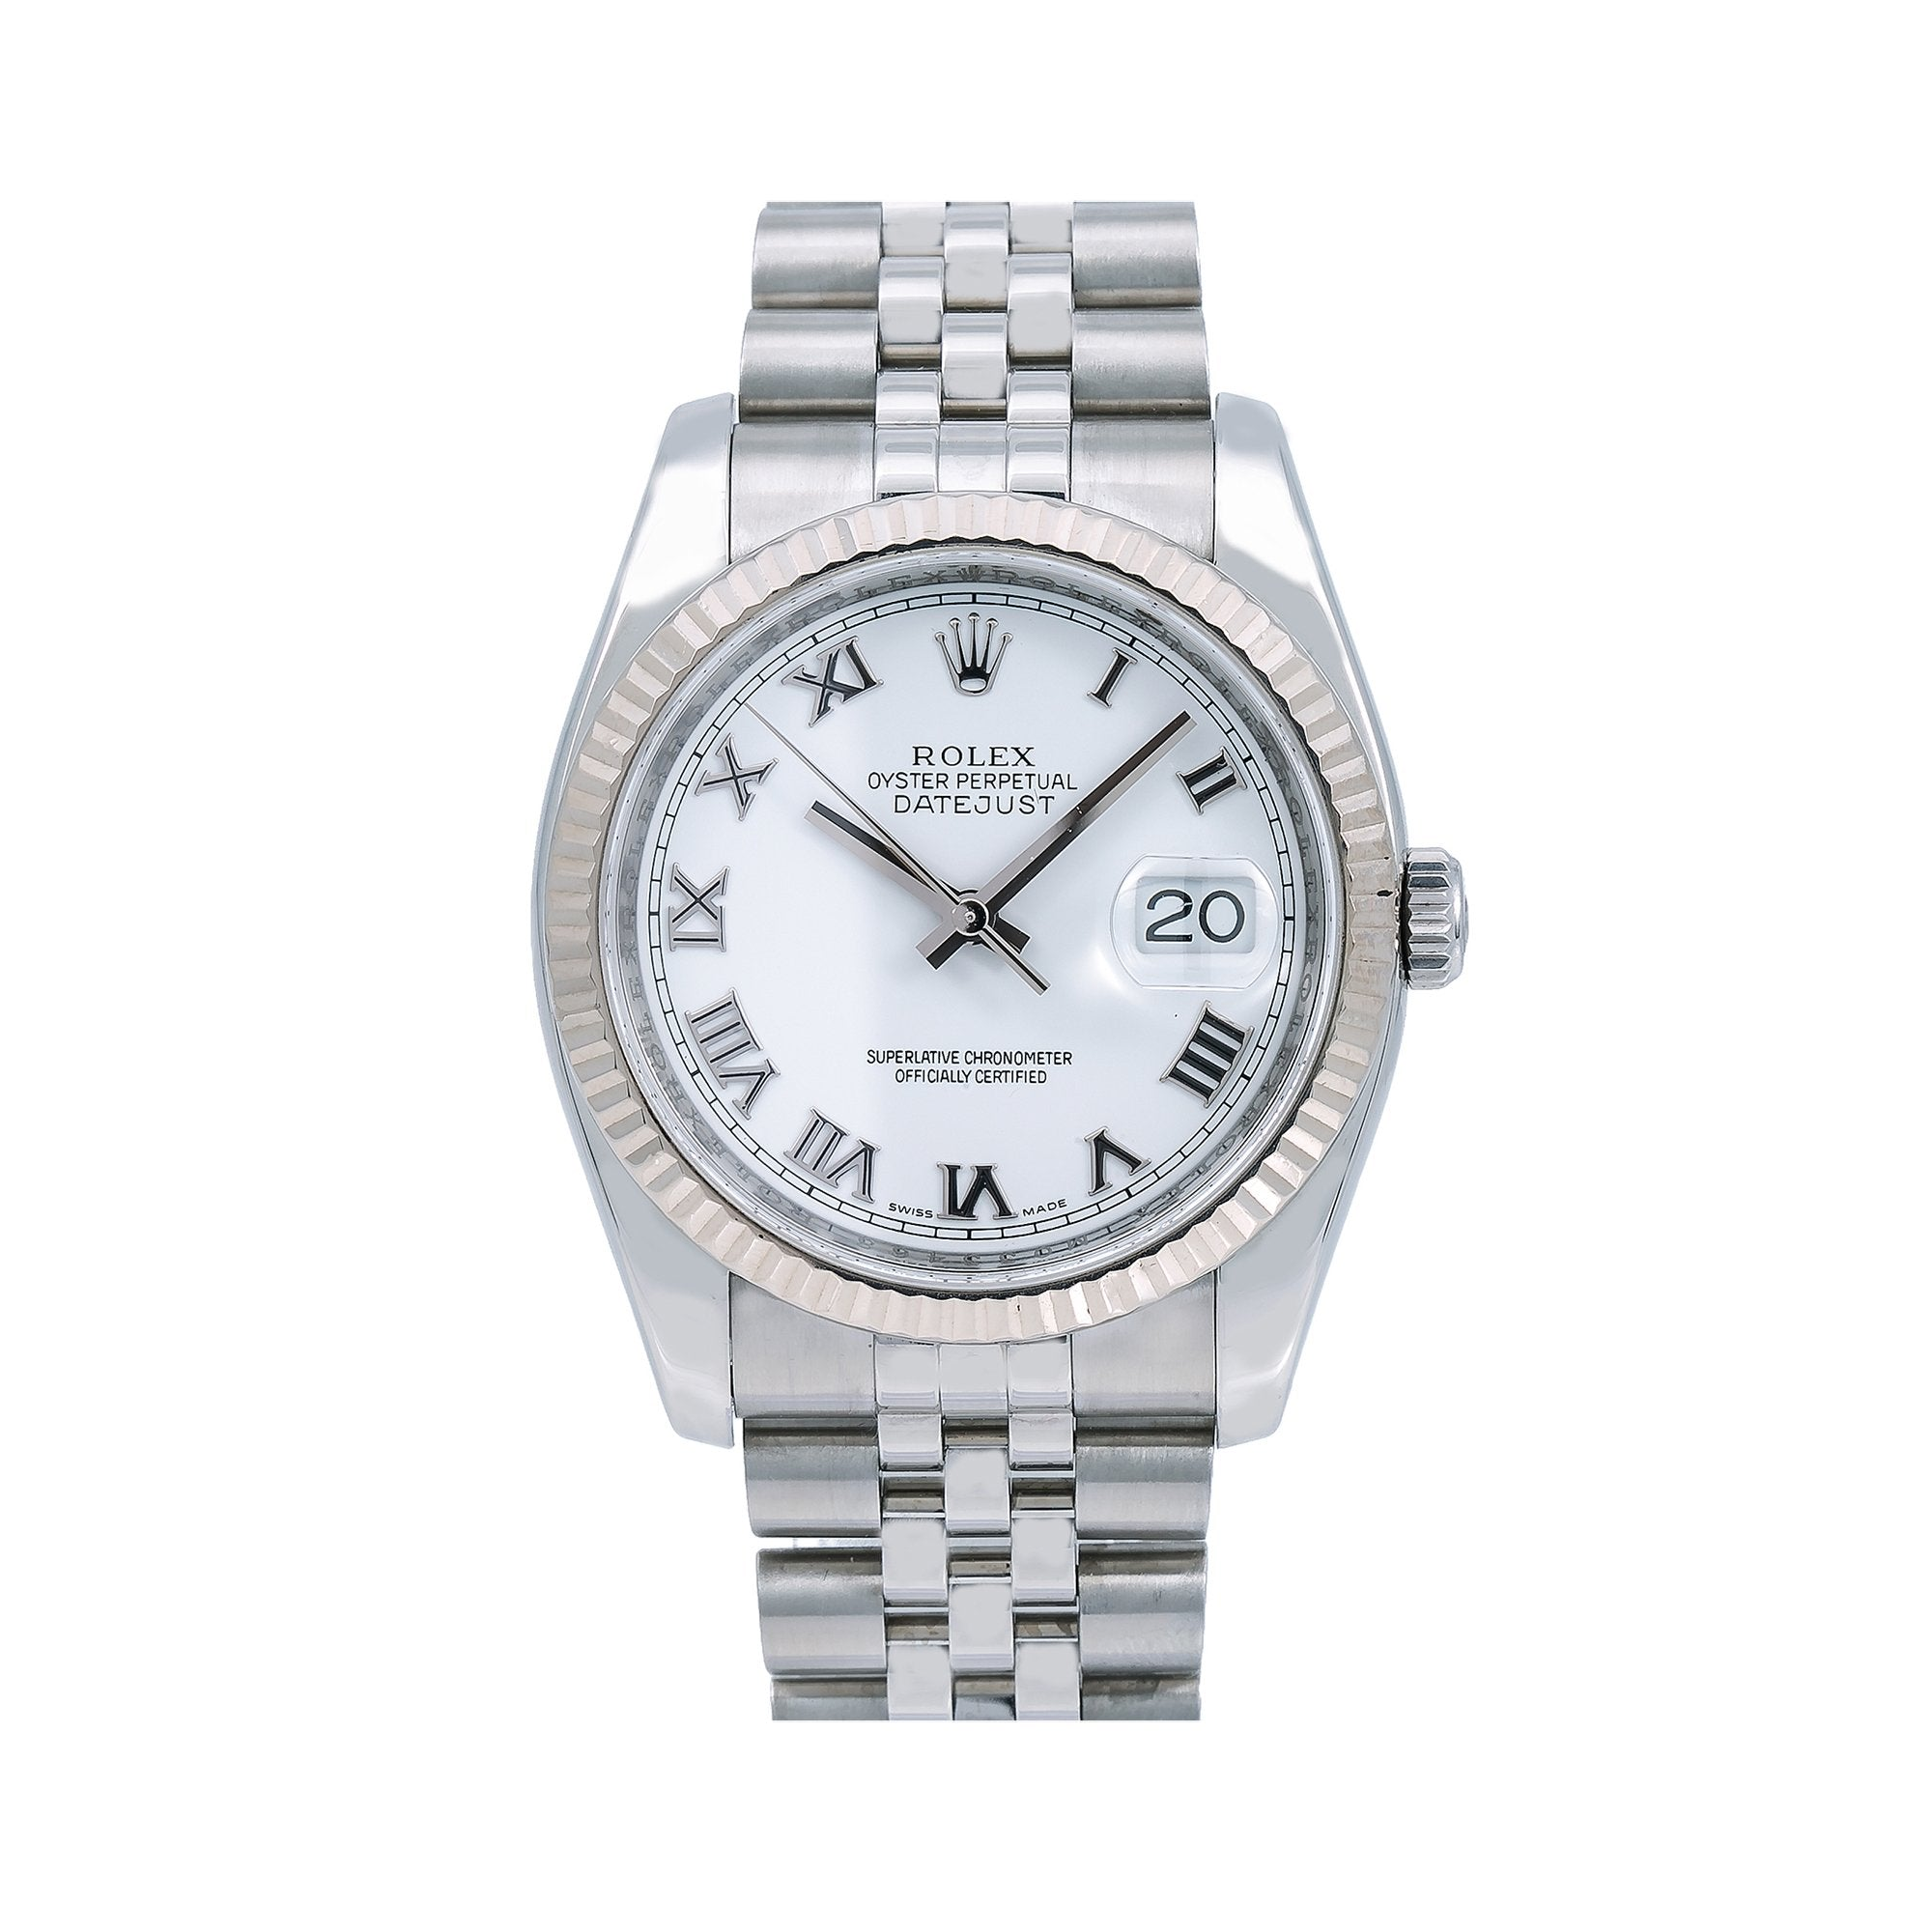 Rolex Datejust 116234 36MM White Dial With Stainless Steel Jubilee Bracelet